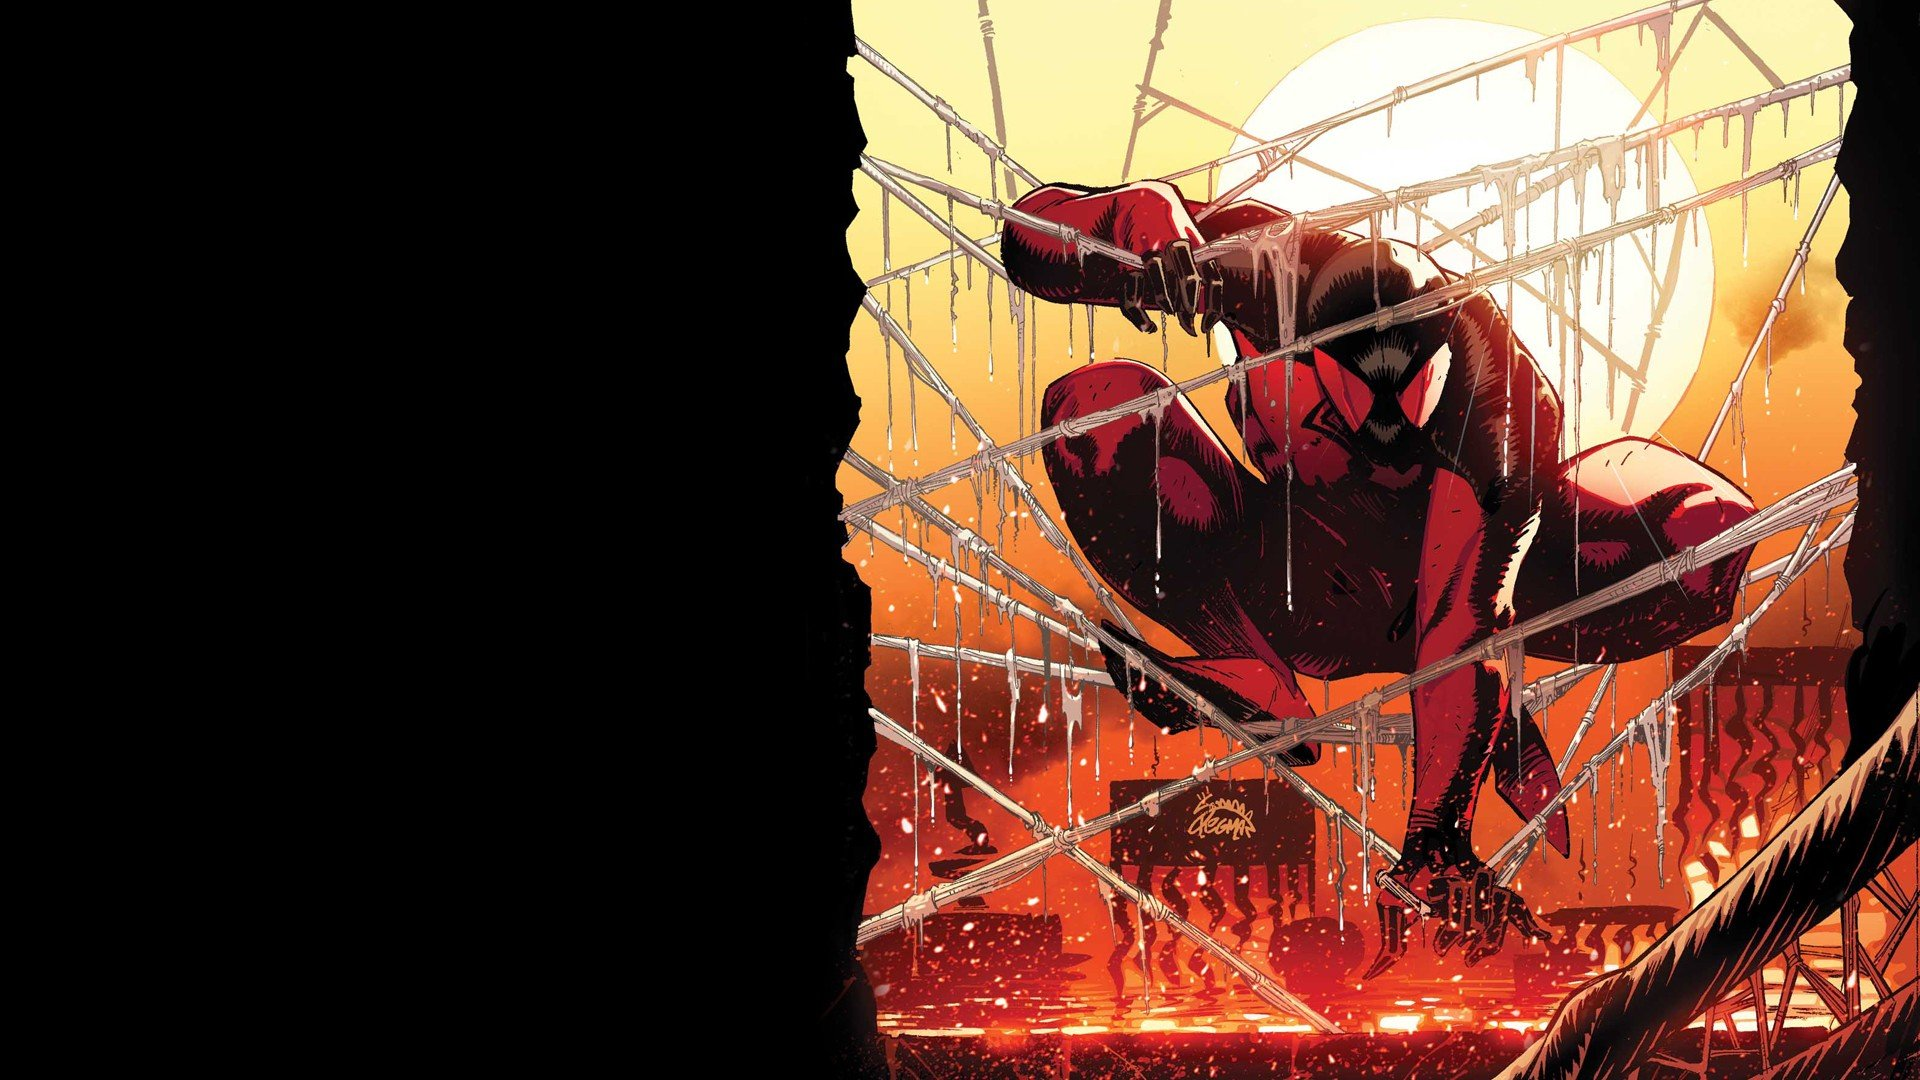 Download hd 1920x1080 Scarlet Spider PC background ID:245760 for free